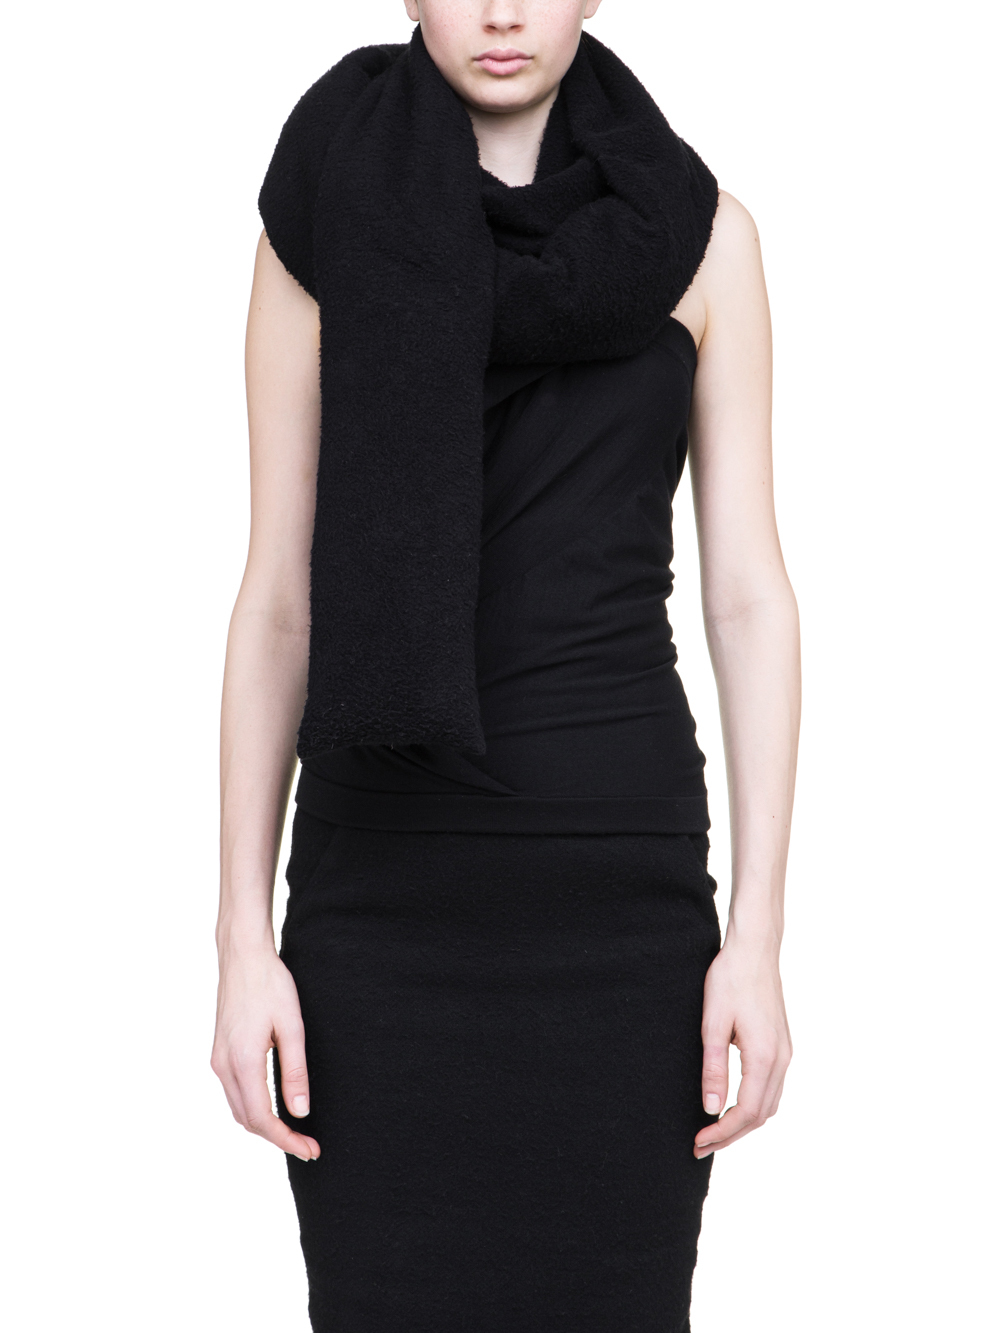 RICK OWENS OFF-THE-RUNWAY MINI STOLE